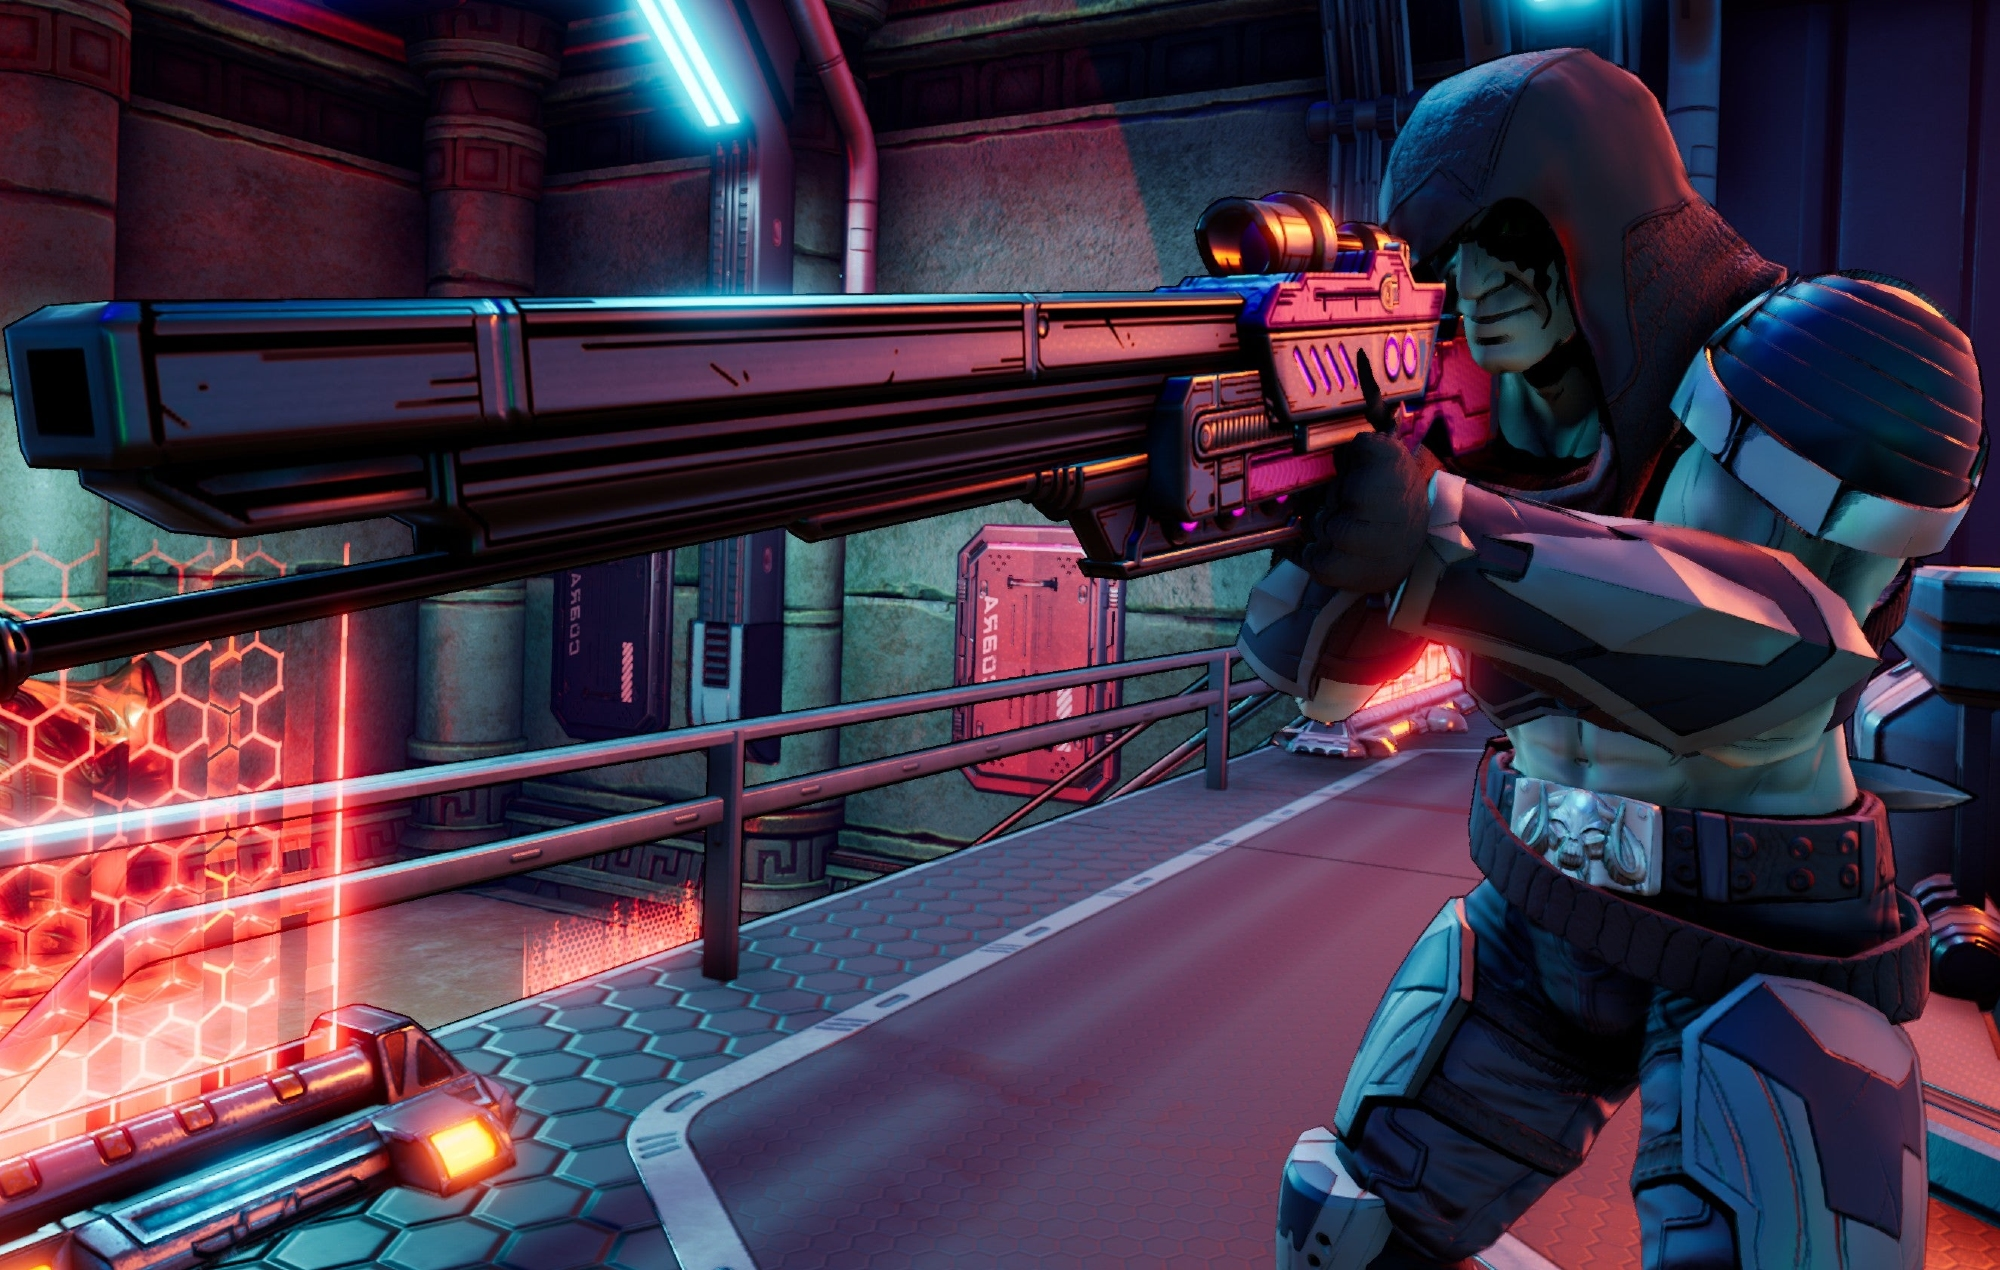 'G.I. Joe: Operation Blackout' officially announced, gets October release - NME